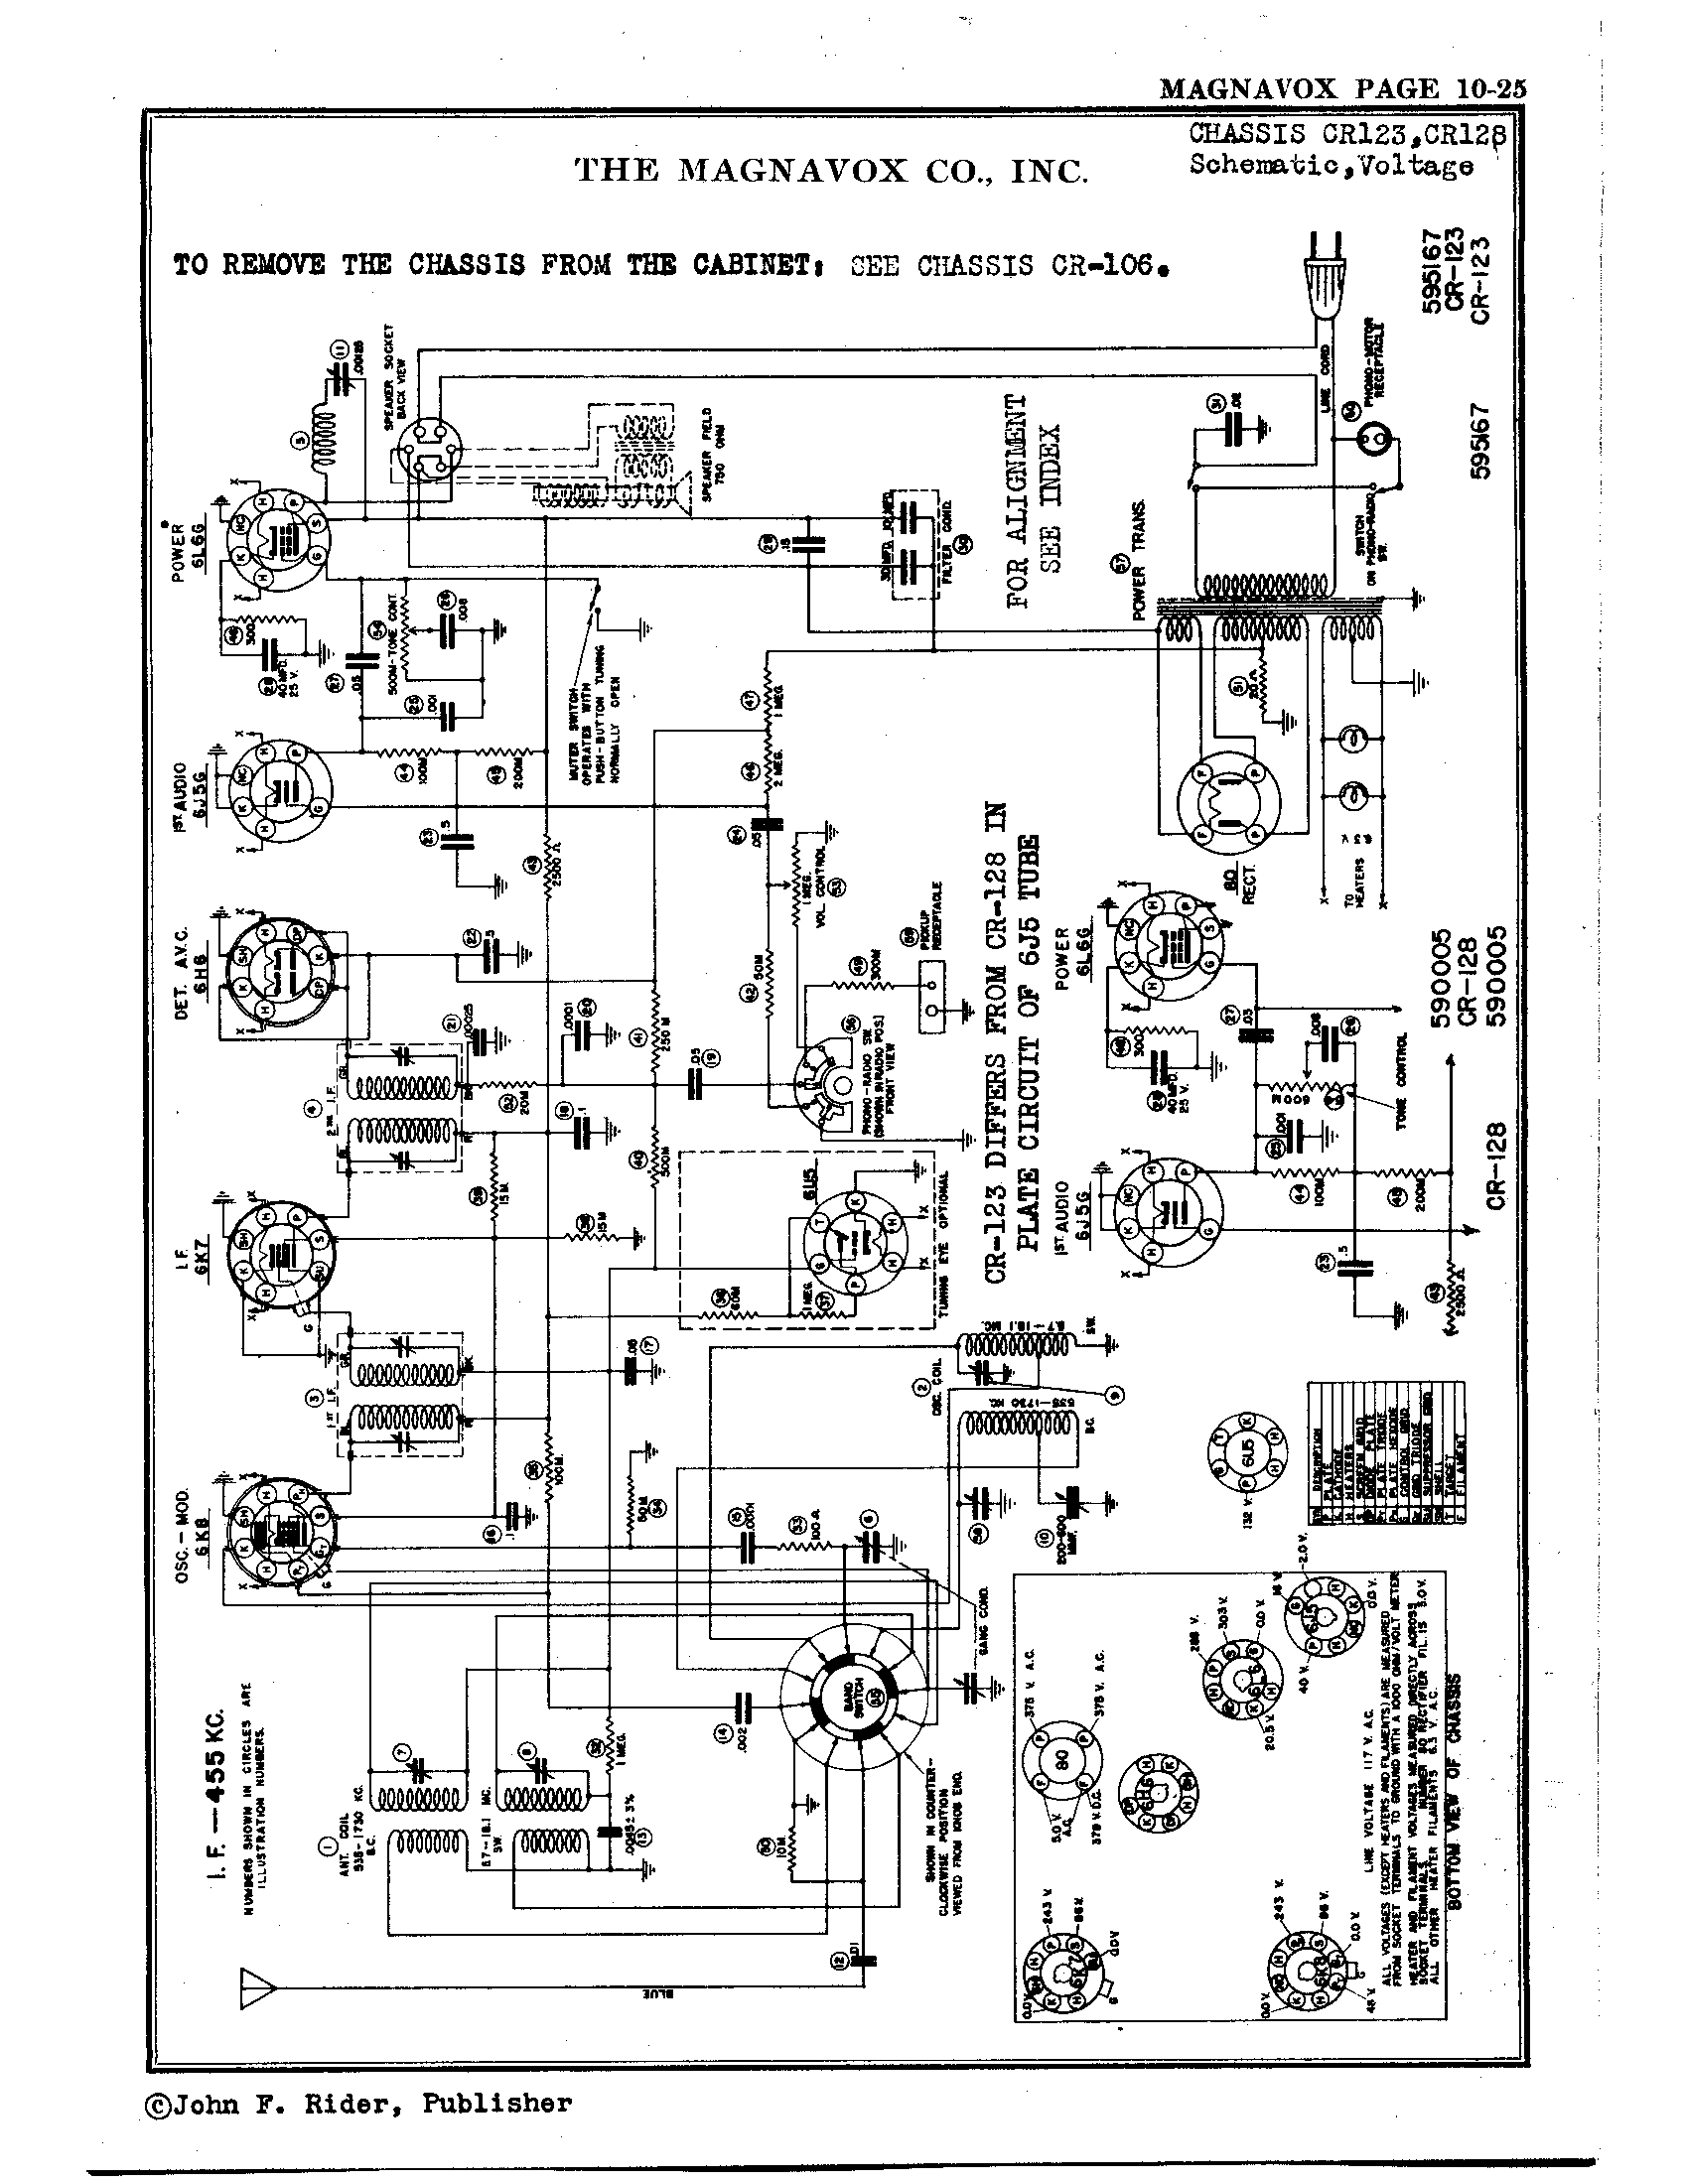 keyboard schematic diagram